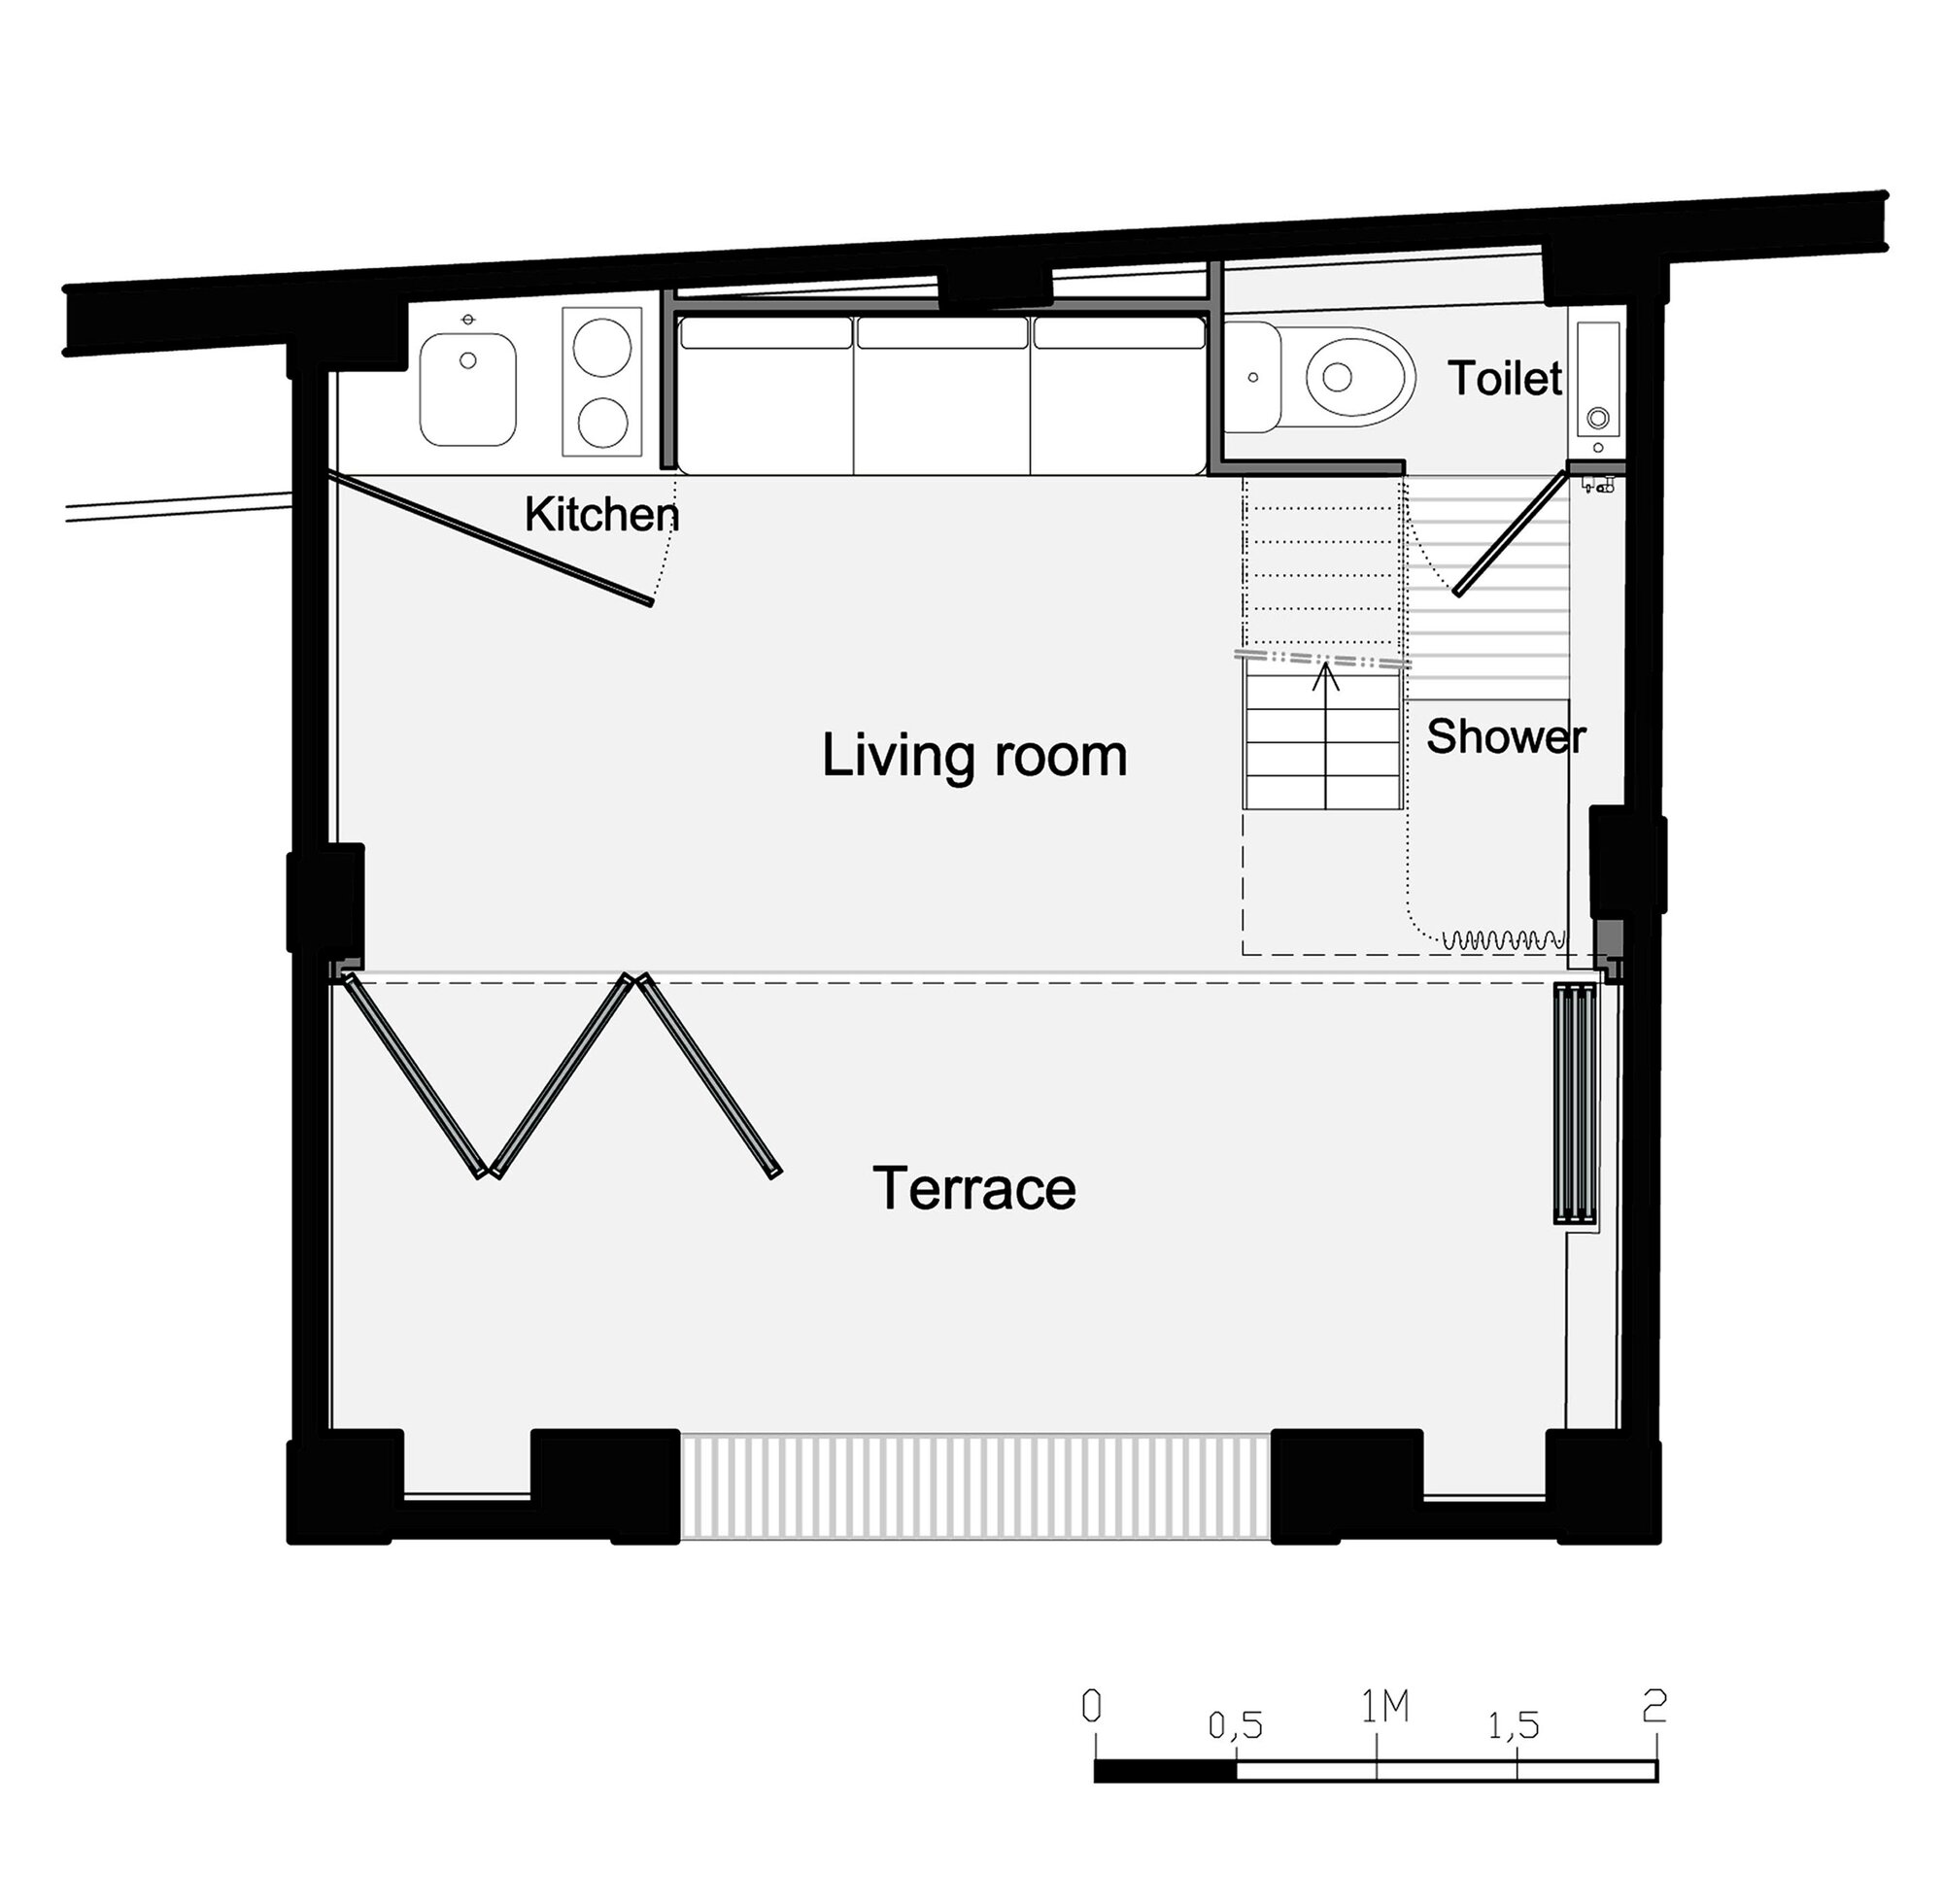 Pavillon d'été - Noémie Meney - Toulon France - Tiny House - Floor Plan - Humble Homes